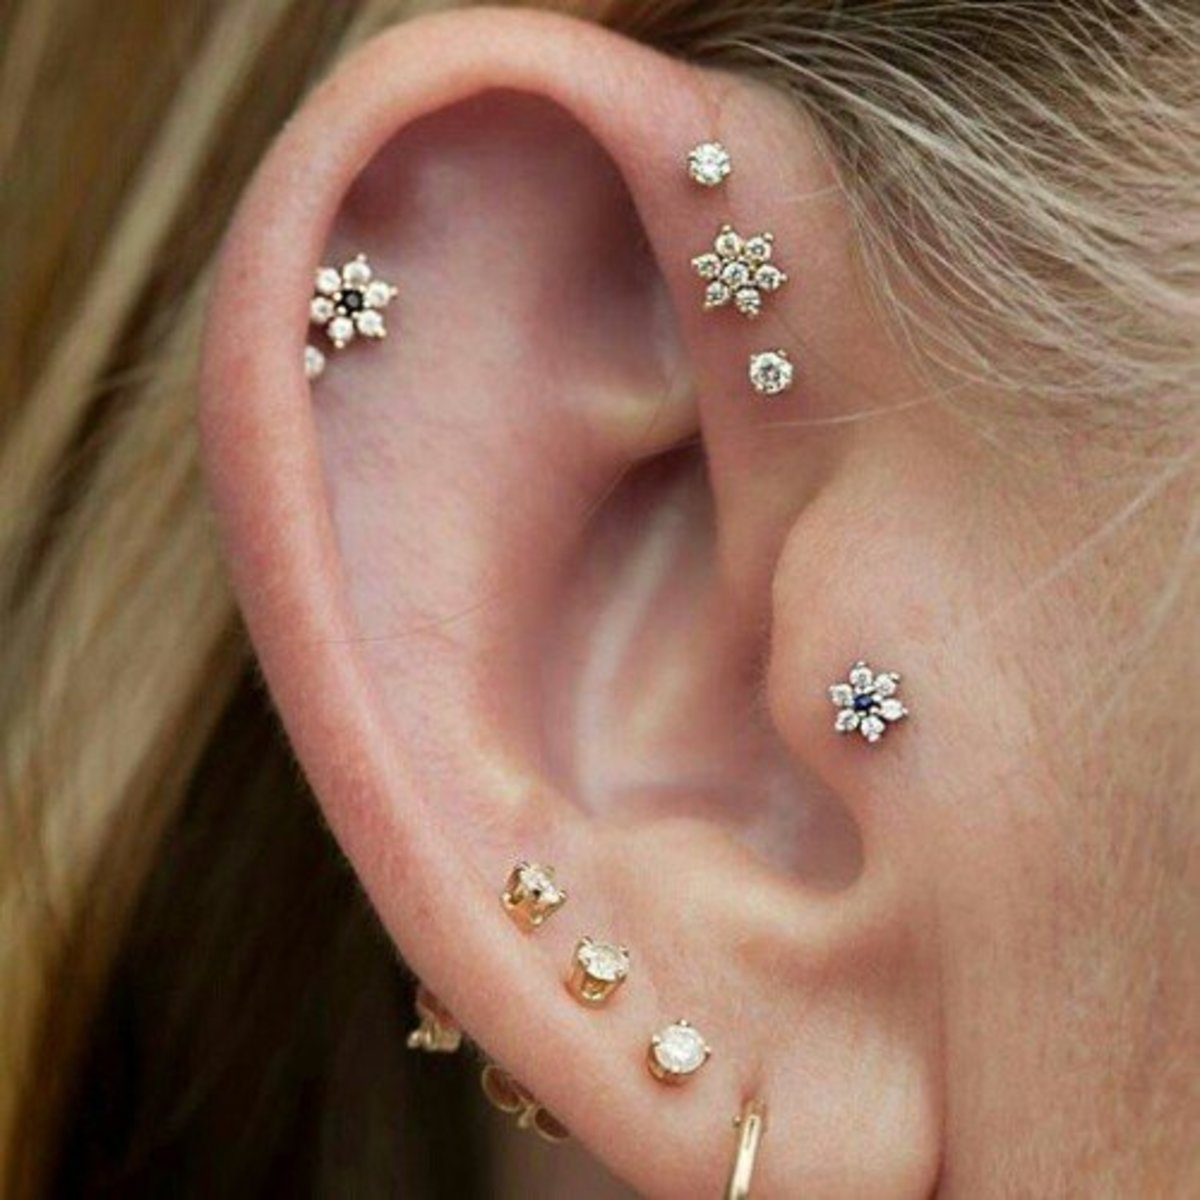 Proper Aftercare of a Pierced  Ear Cartilage Piercing Tragus